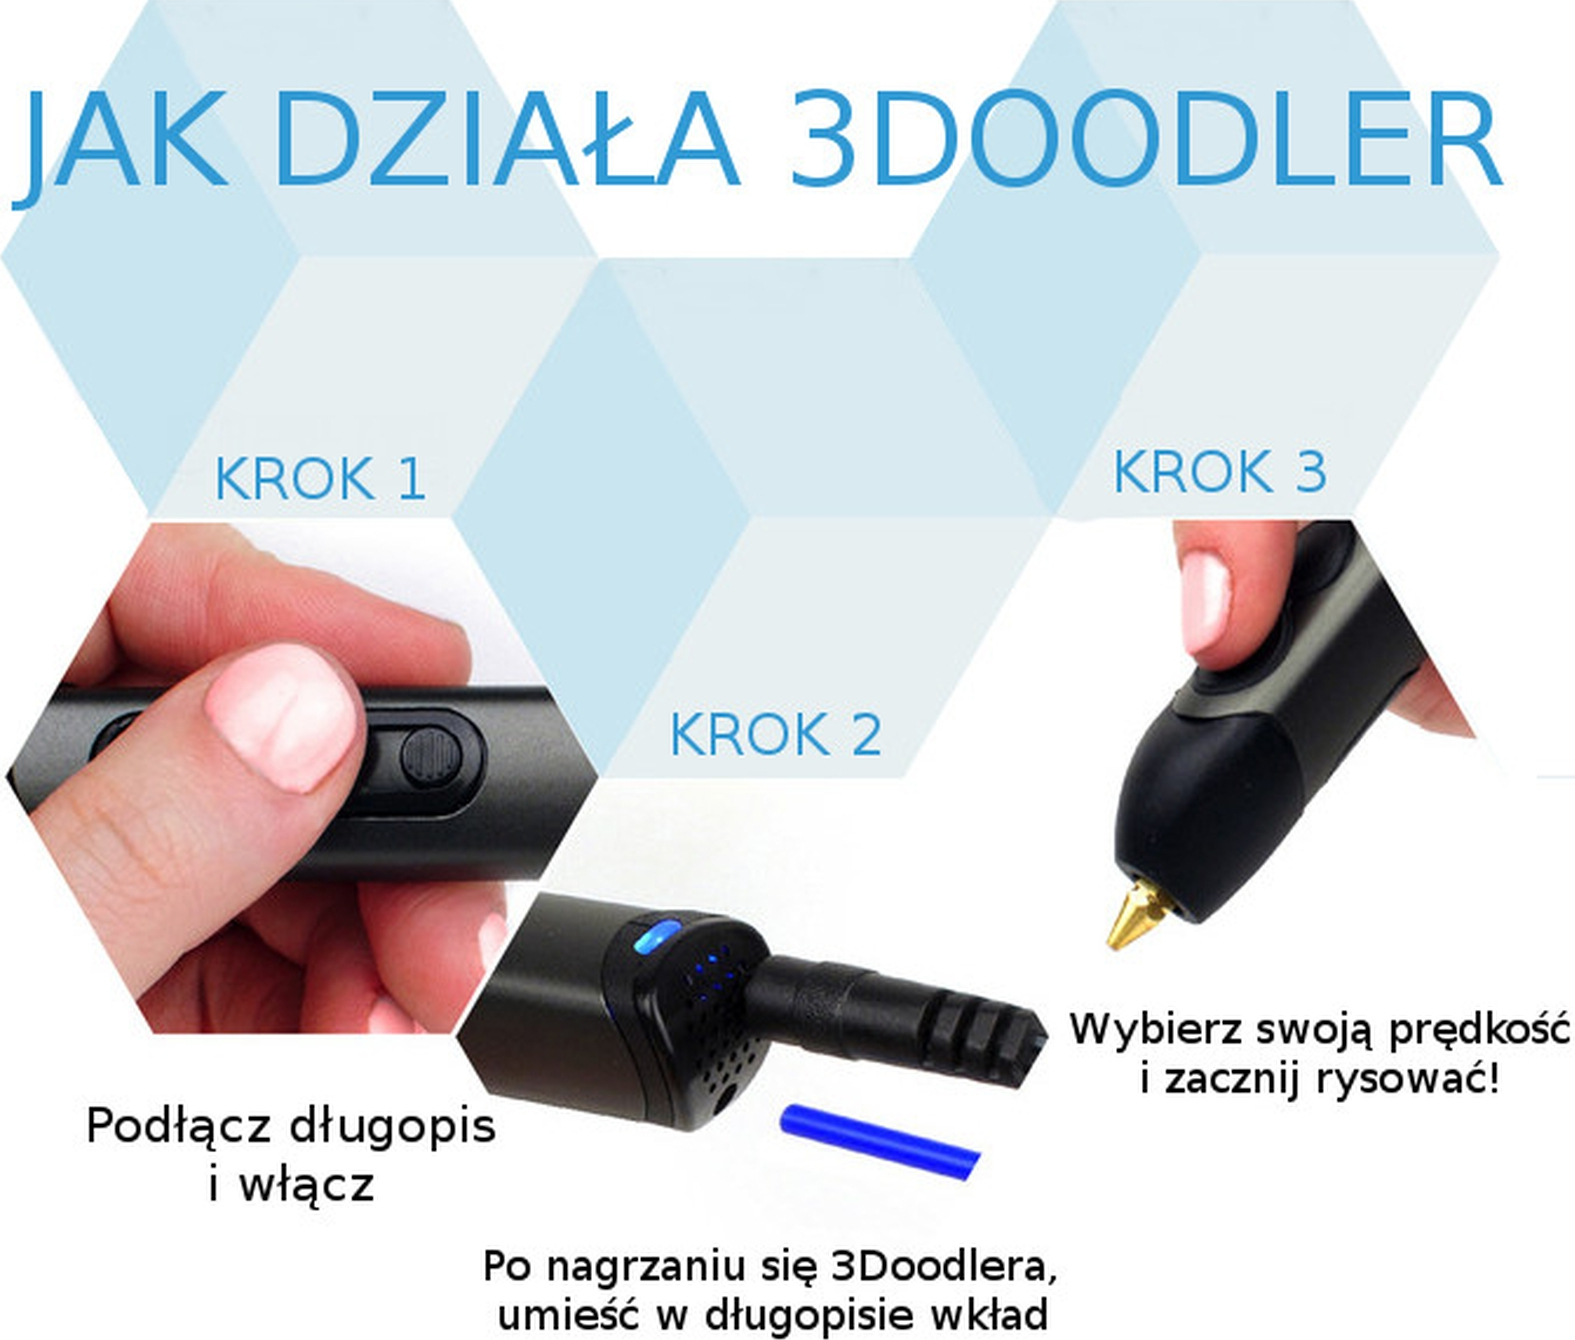 3Doodler Create Project Kit Dom Farnswortha